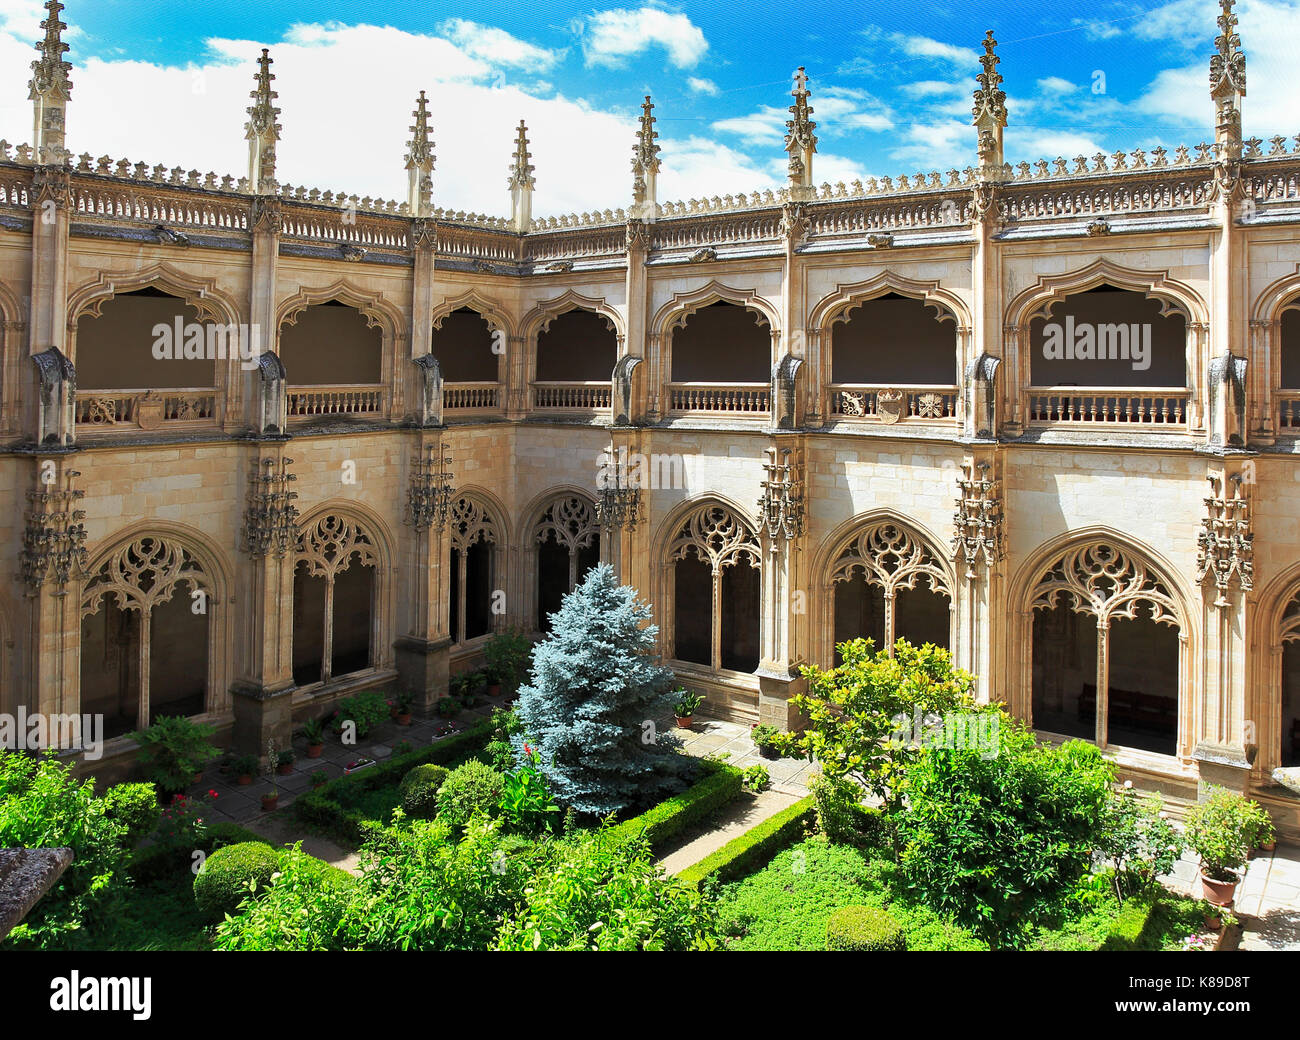 TOLEDO, SPAIN - JUNE 26, 2017: The Monastery of San Juan de los Reyes is an Isabelline style monastery in Toledo, - Stock Image